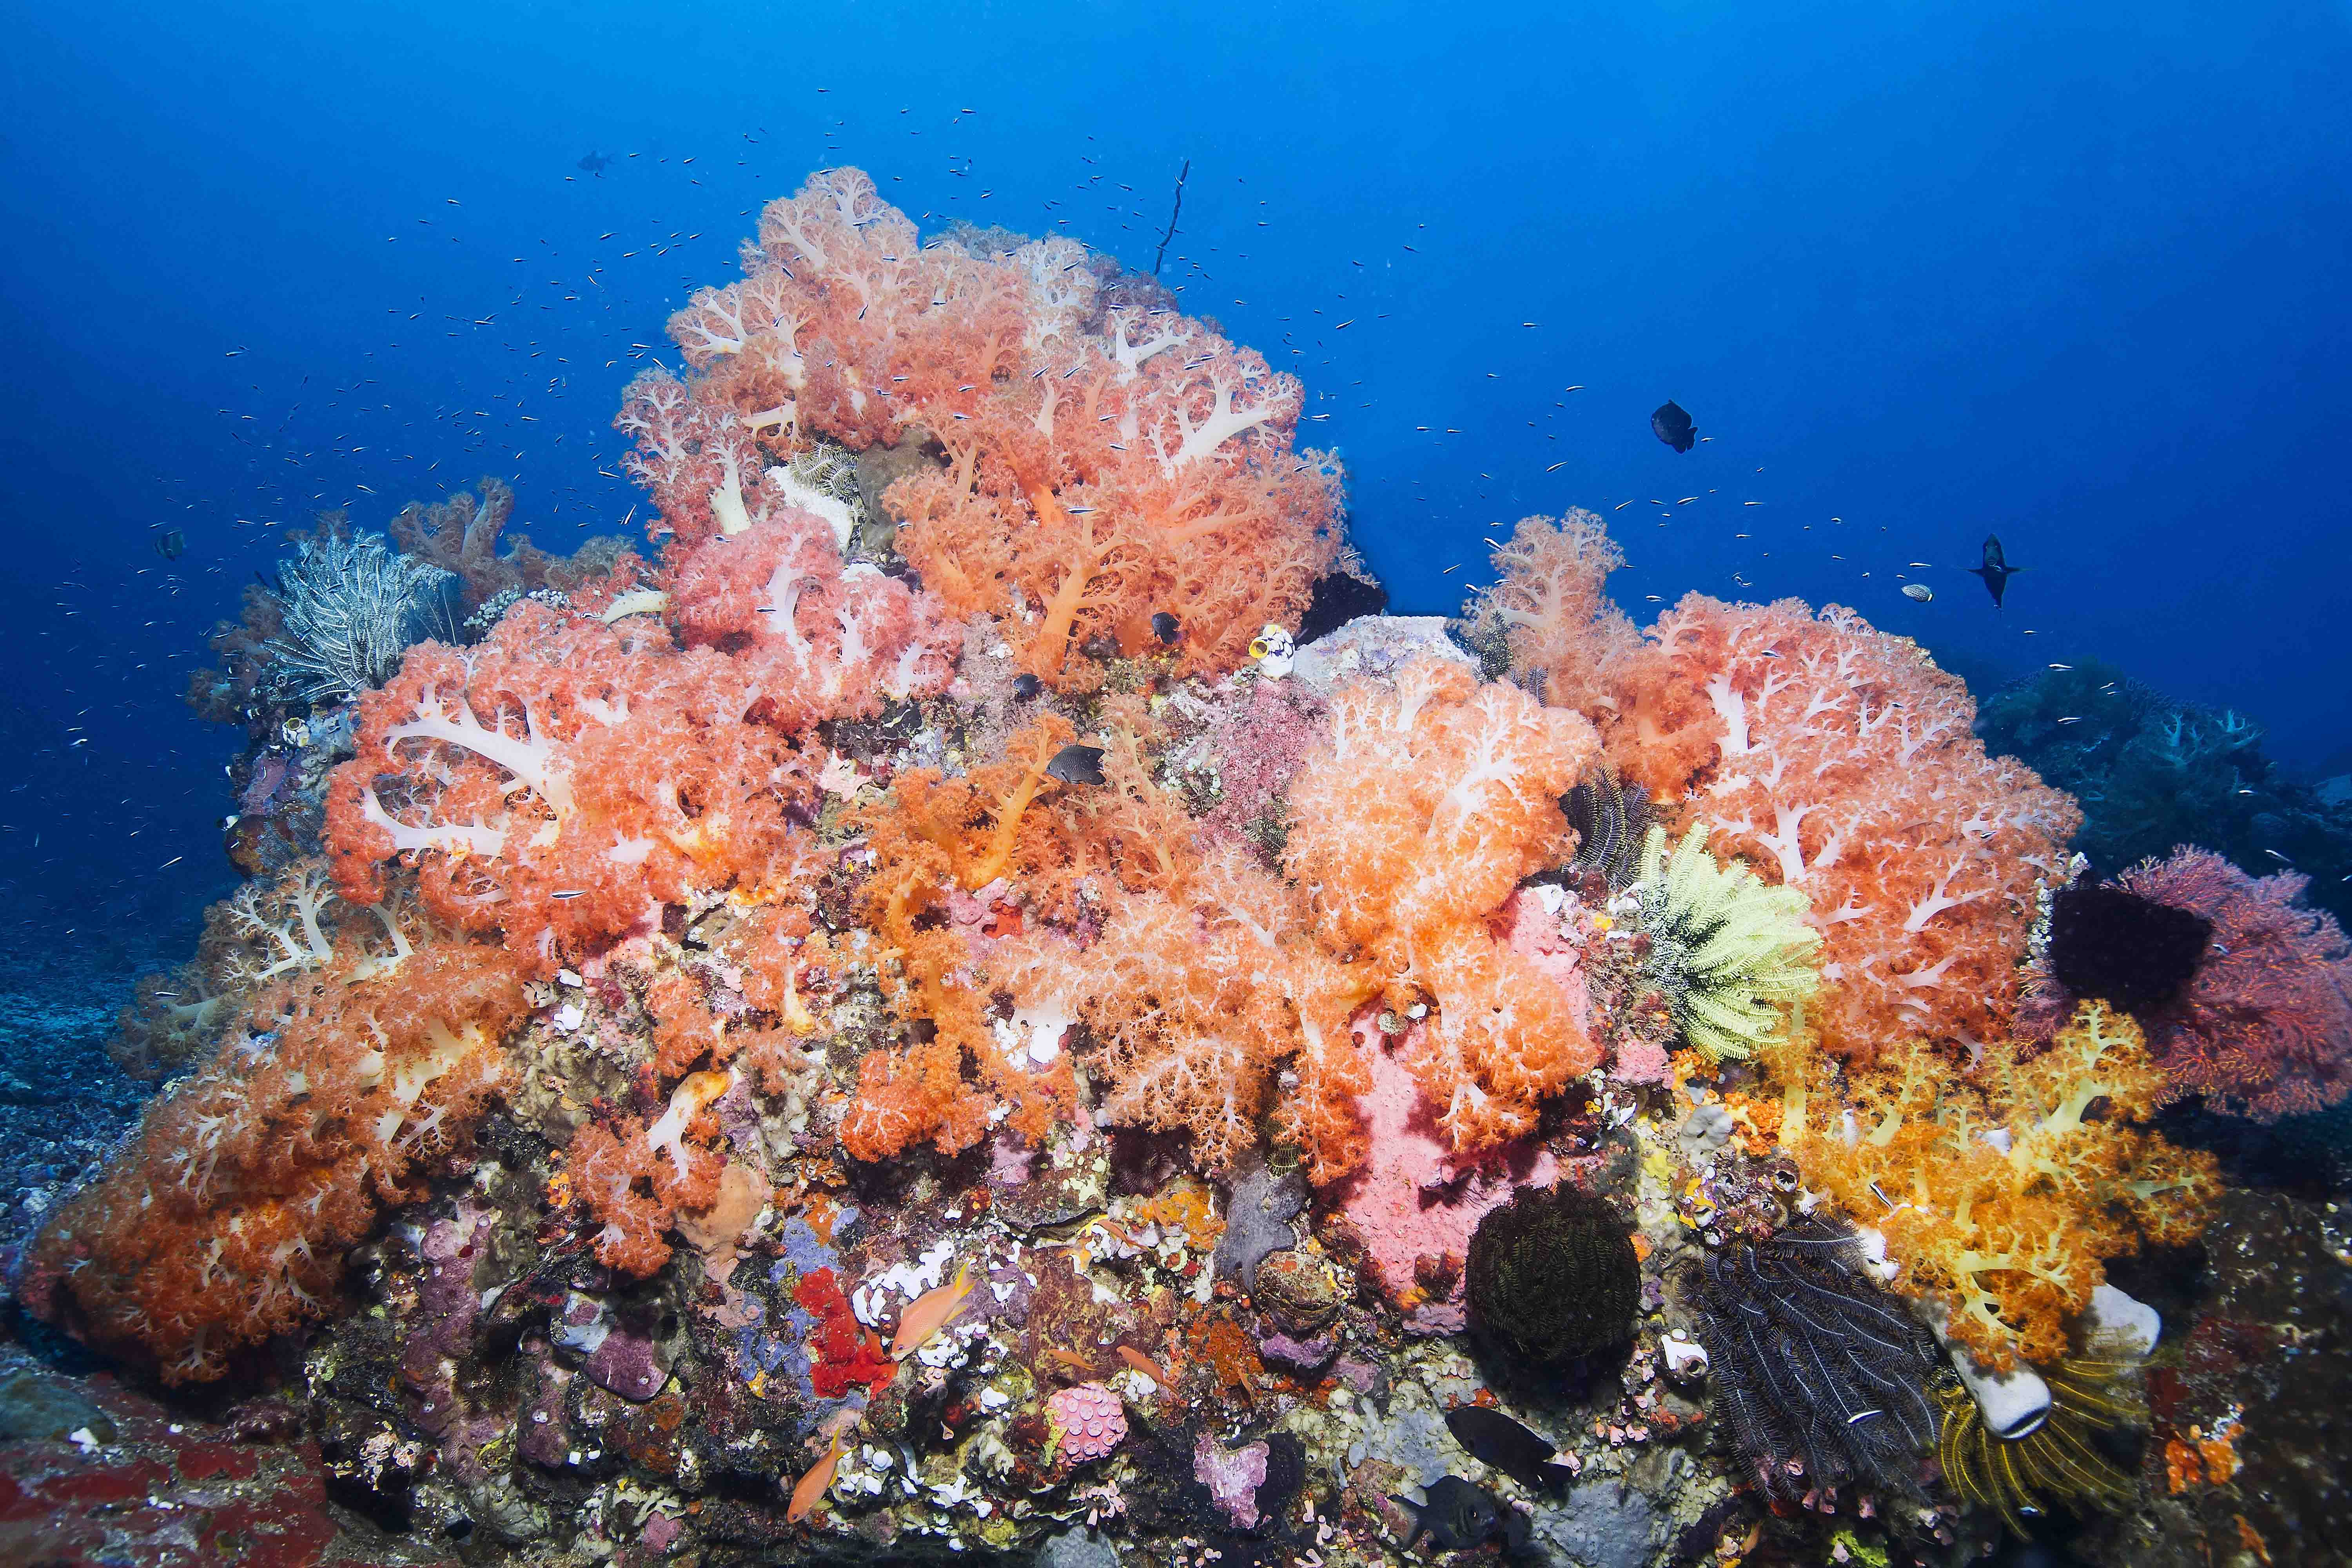 Indonesien, Indonesia, Nord Sulawesi , North Sulawesi, Molucca Sea, Molukken See, Tauchen, Diving,